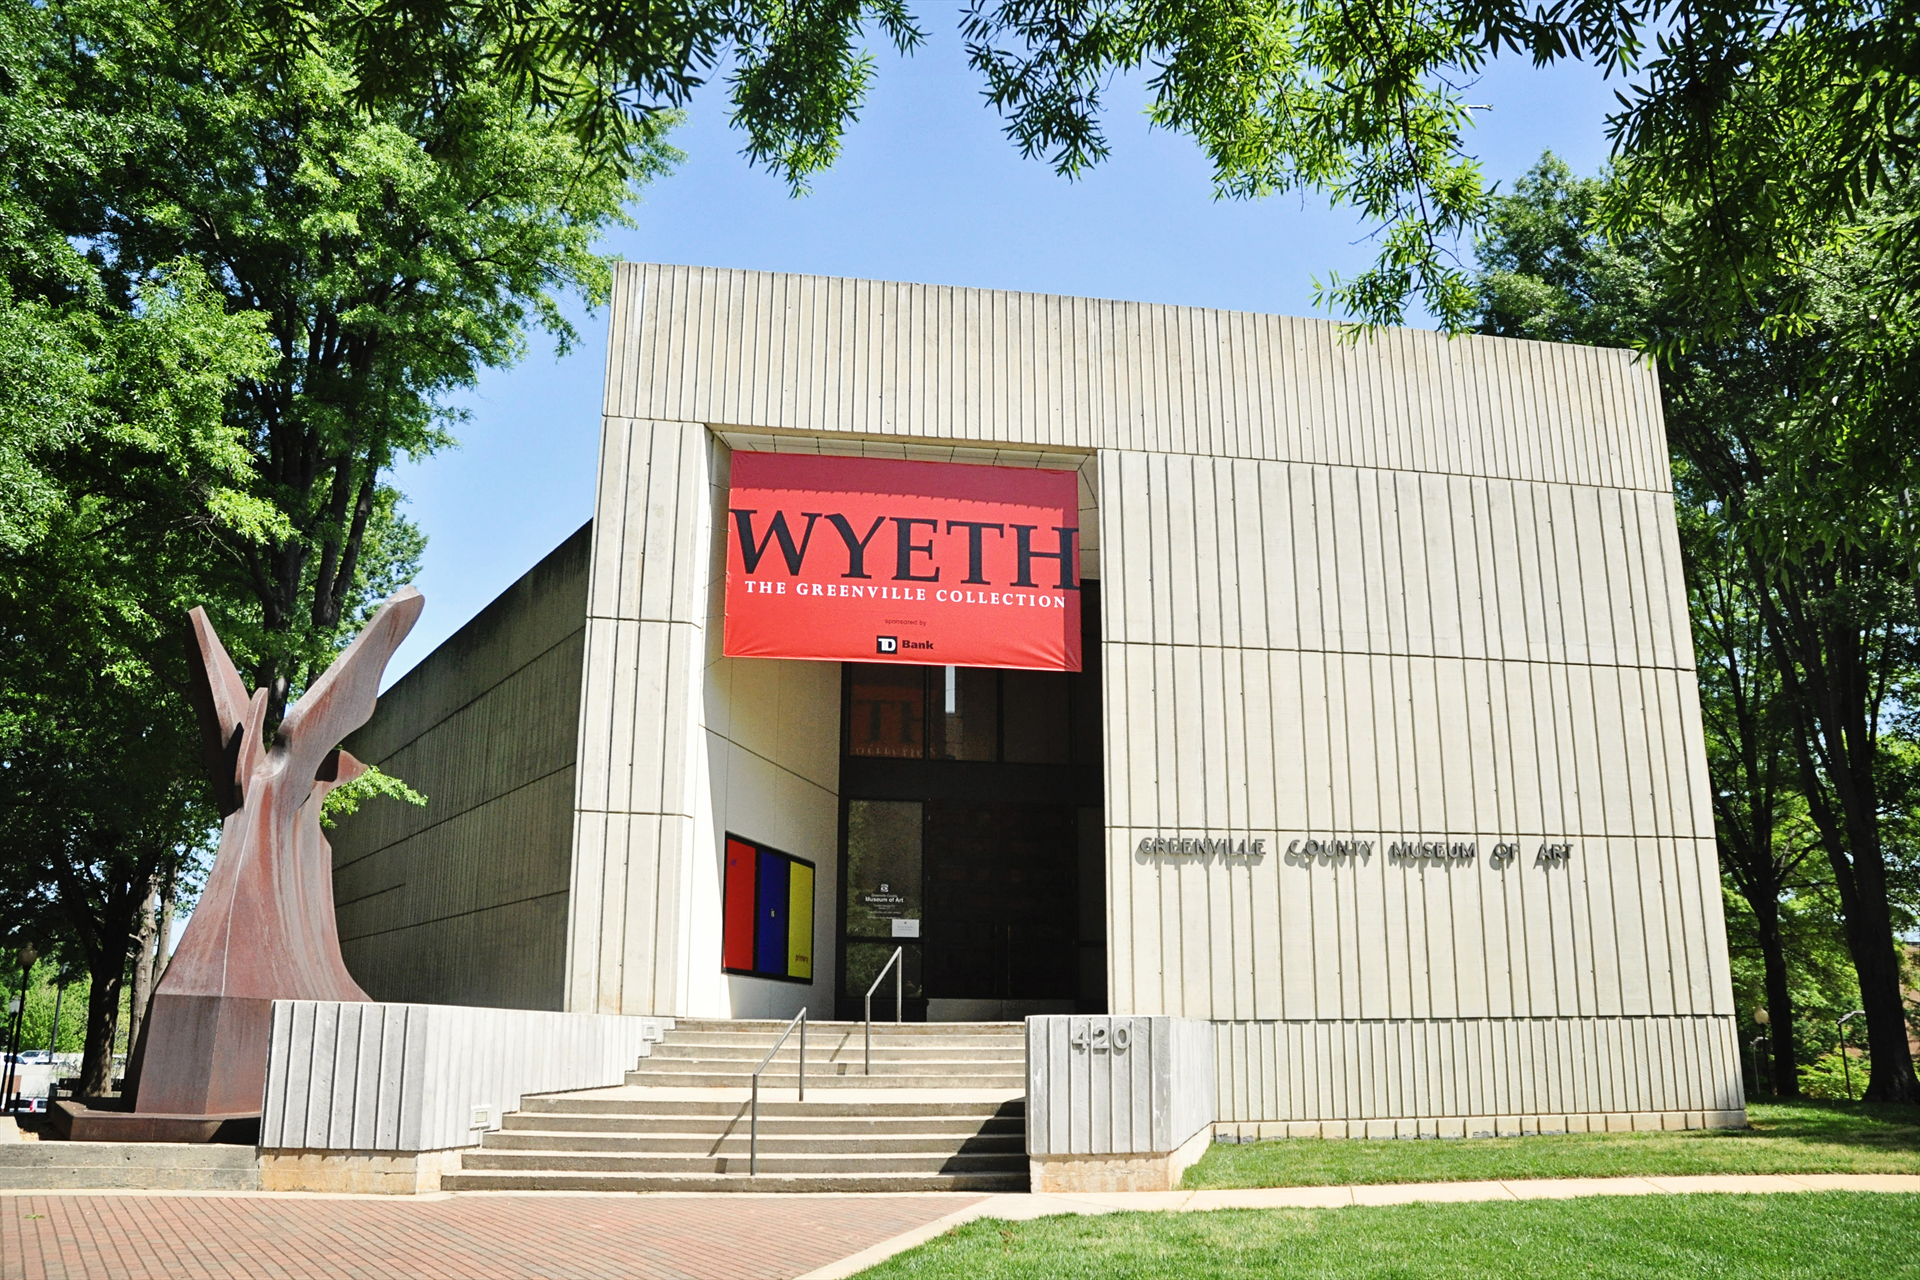 GCMA_Museum_exterior_with_Wyeth_banner.jpg